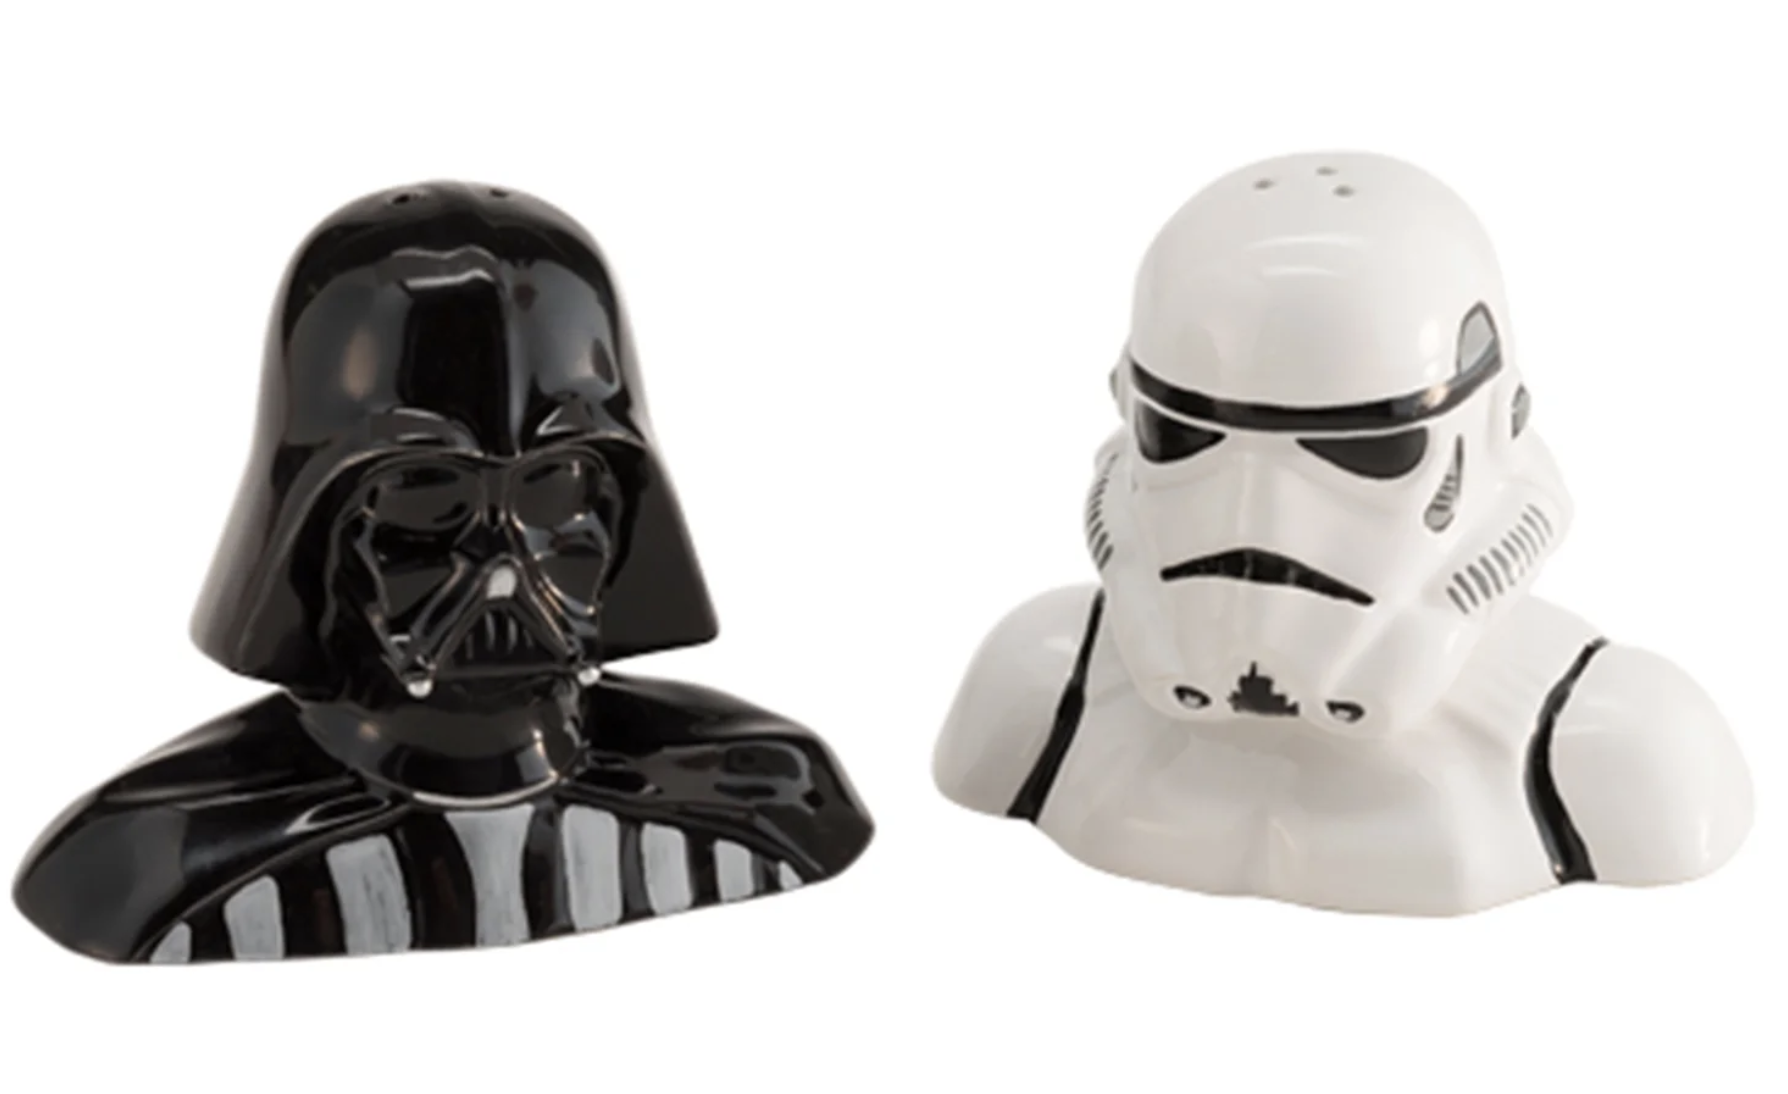 one darth vador pepper shaker shaped from the shoulders up and a matching storm trooper version for salt